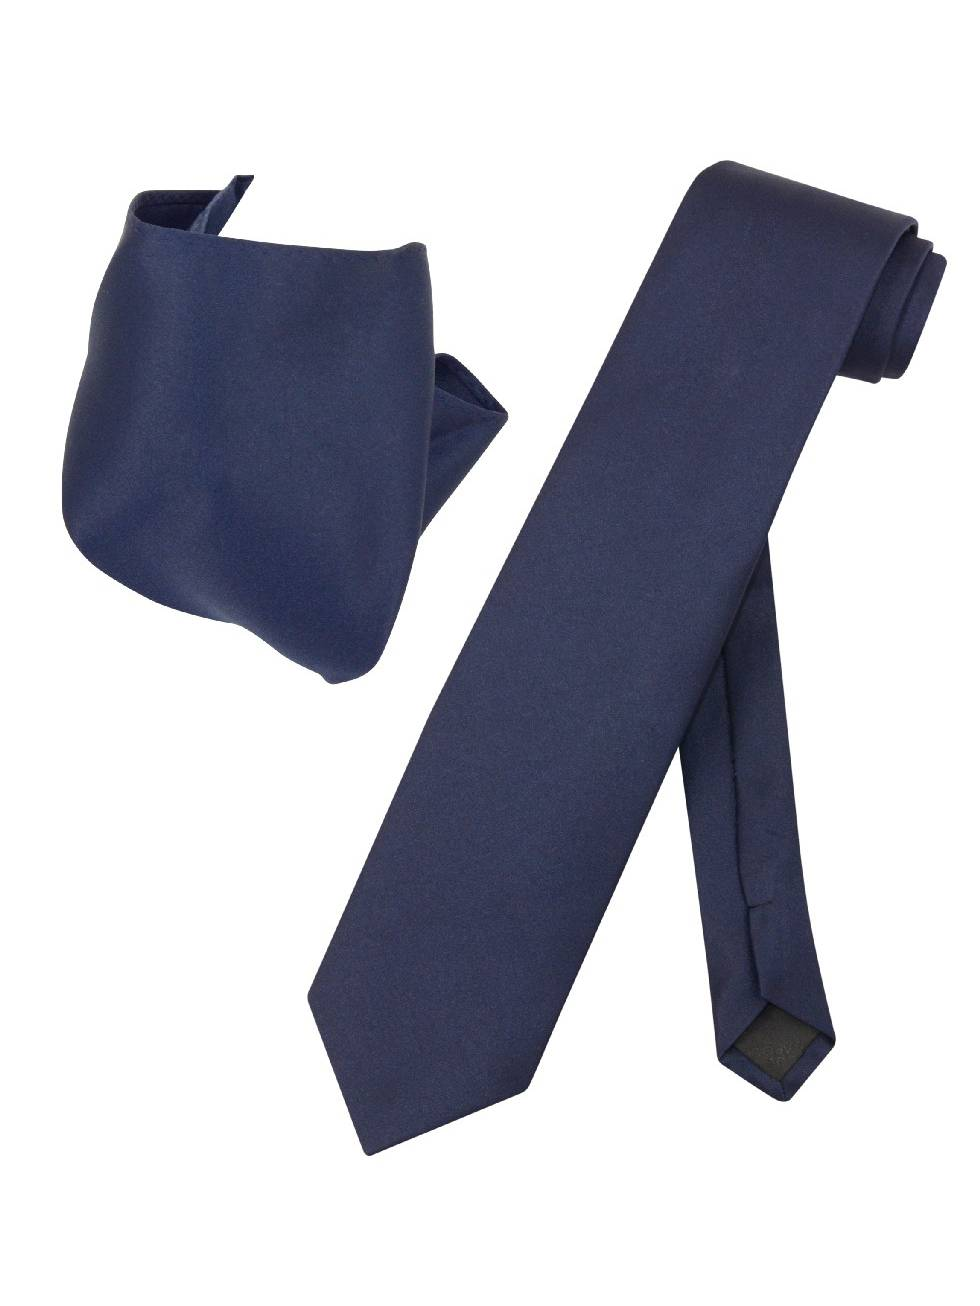 Vesuvio Napoli Solid EXTRA LONG NAVY BLUE NeckTie Handkerchief Mens Neck Tie Set